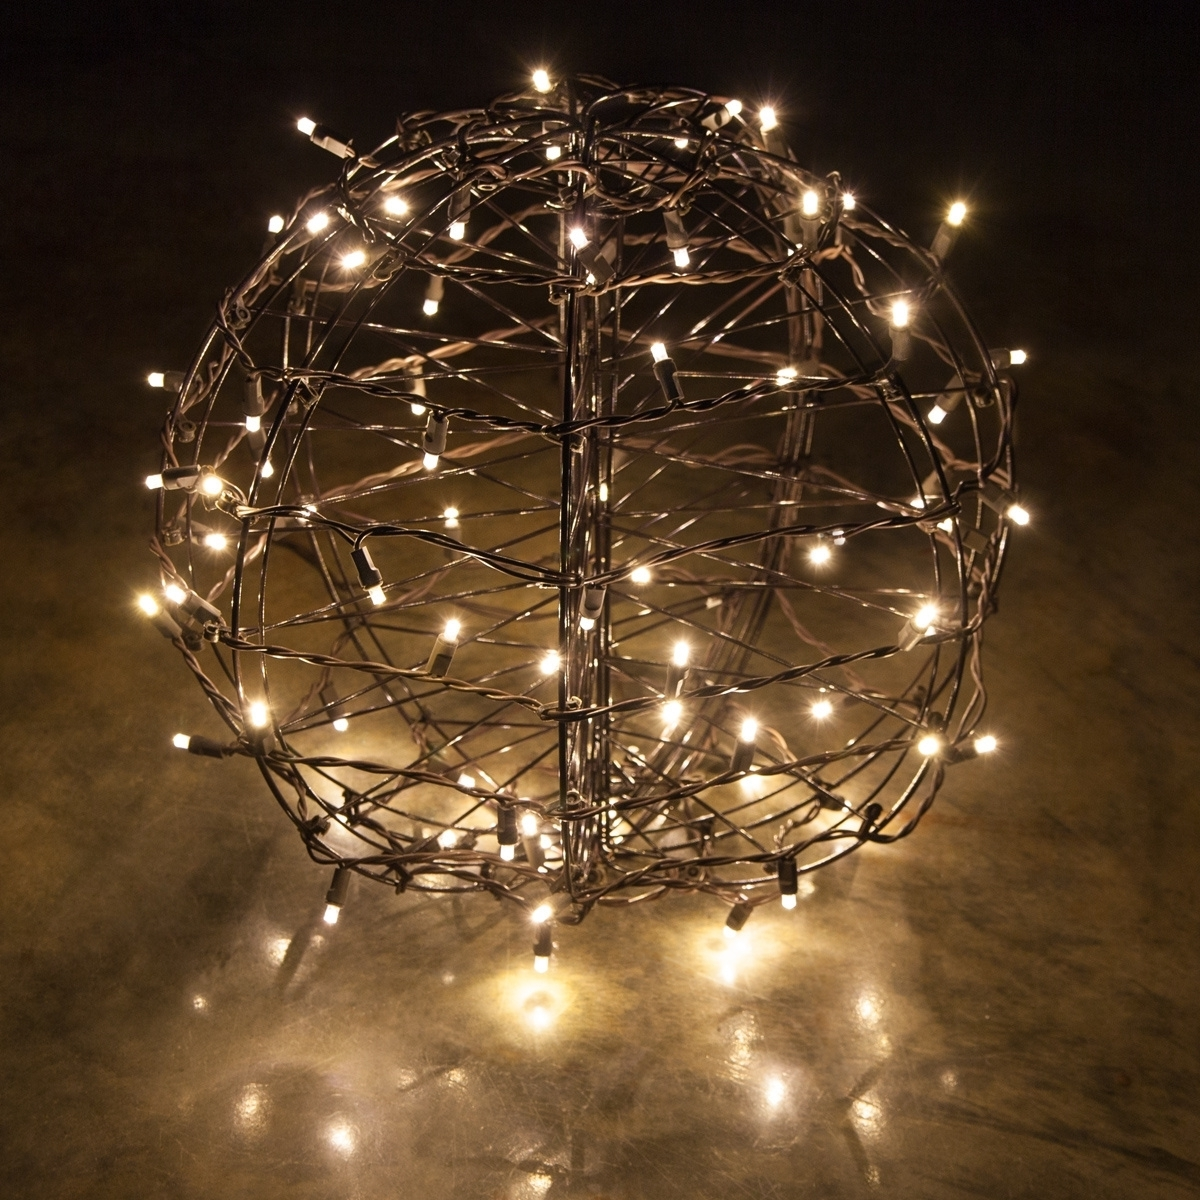 2019 Outdoor Hanging Sphere Lights Within Outdoor Hanging Sphere Lights • Outdoor Lighting (Gallery 1 of 20)